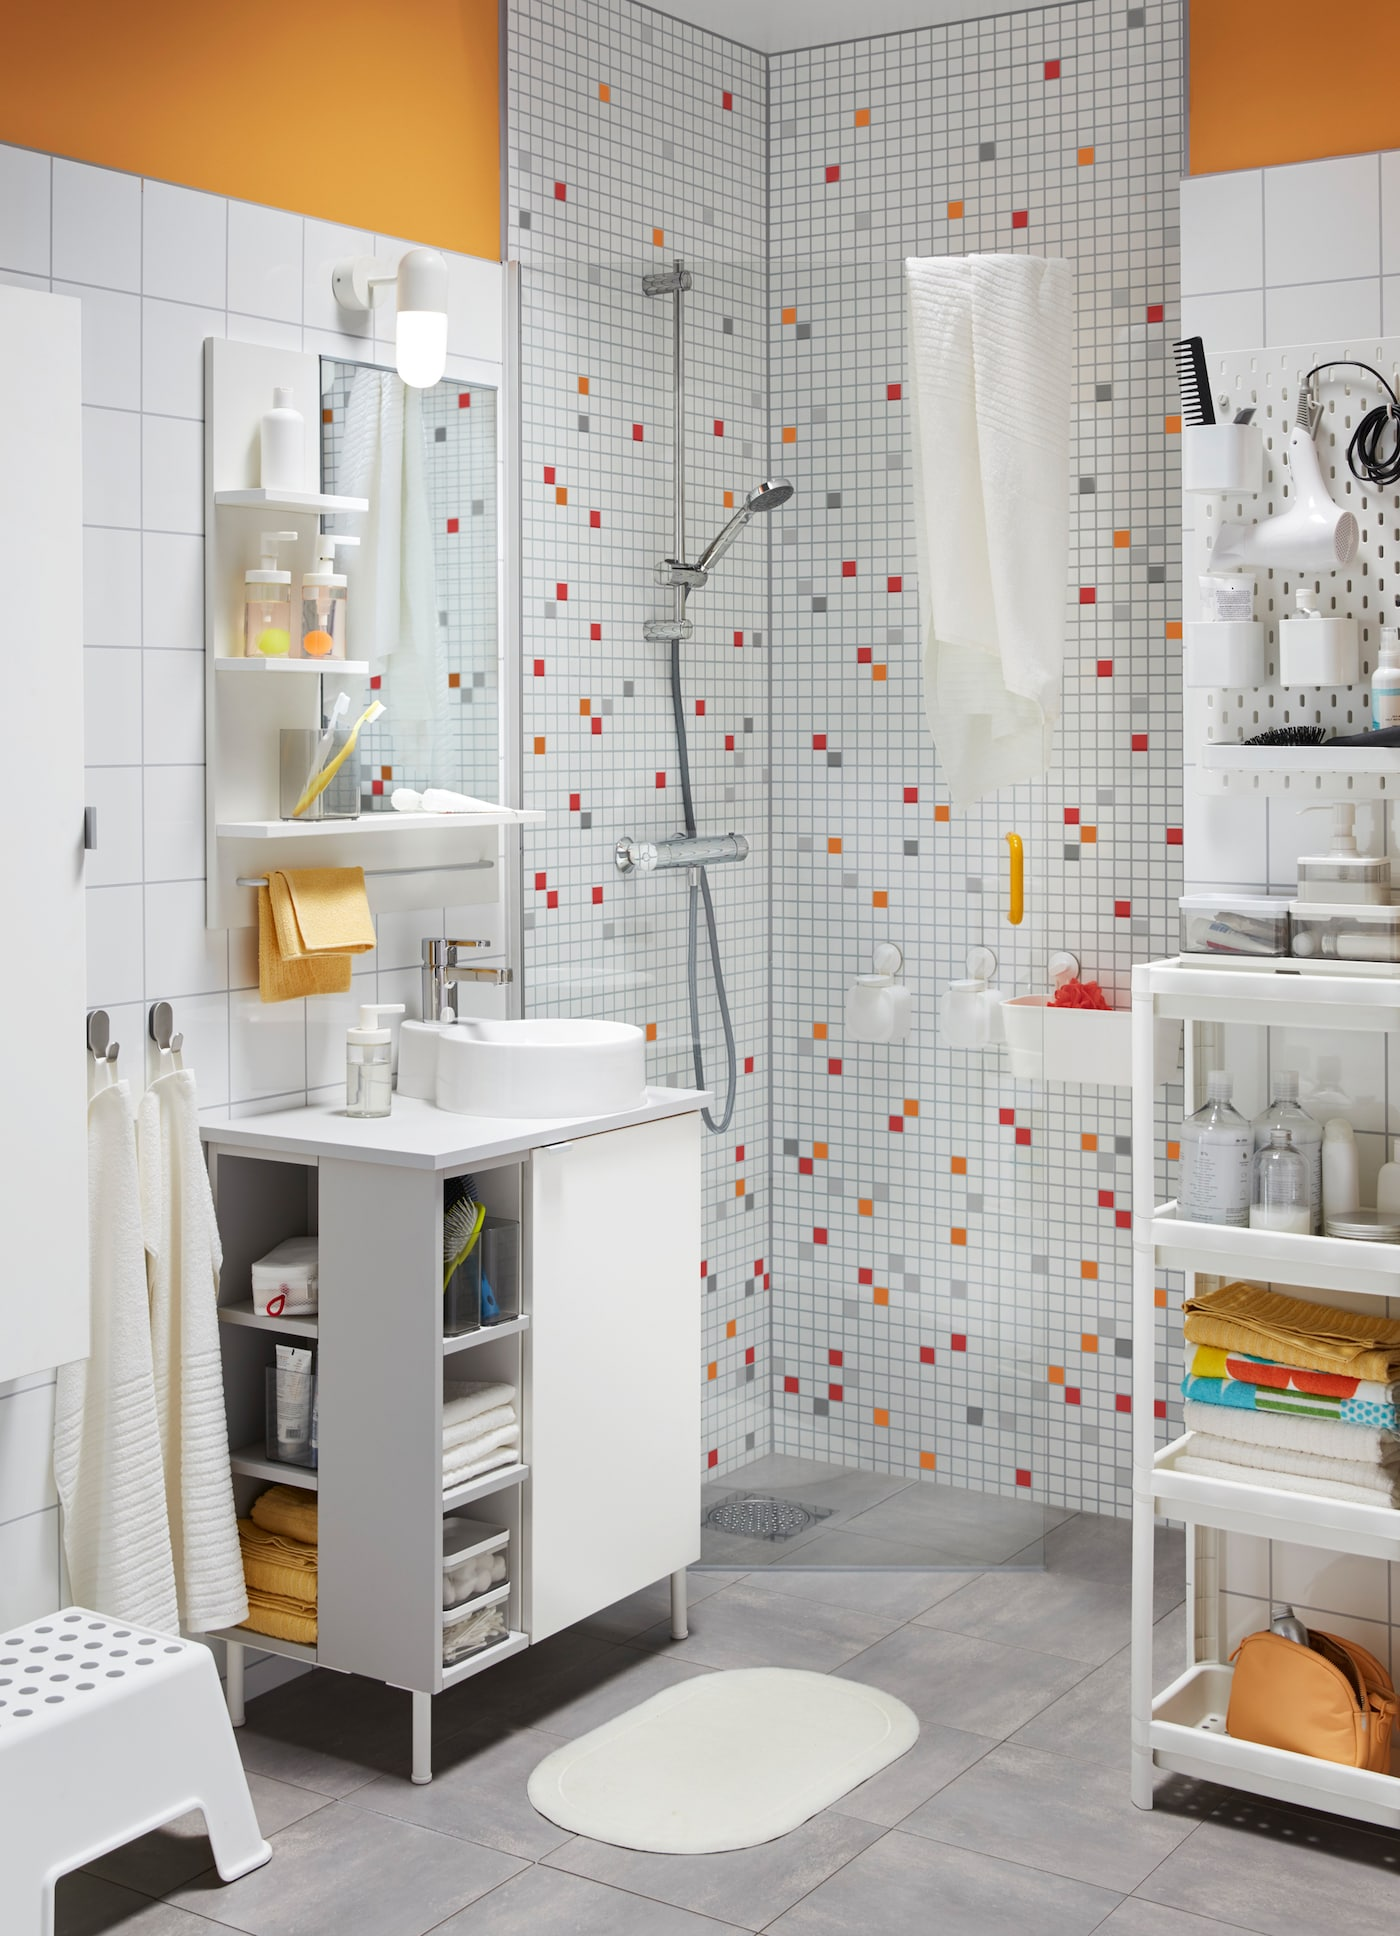 Fit children and guests into a small space bathroom with the IKEA LILLÅNGEN series, practical SKÅDIS pegboard and no-drill STUGVIK suction hooks.